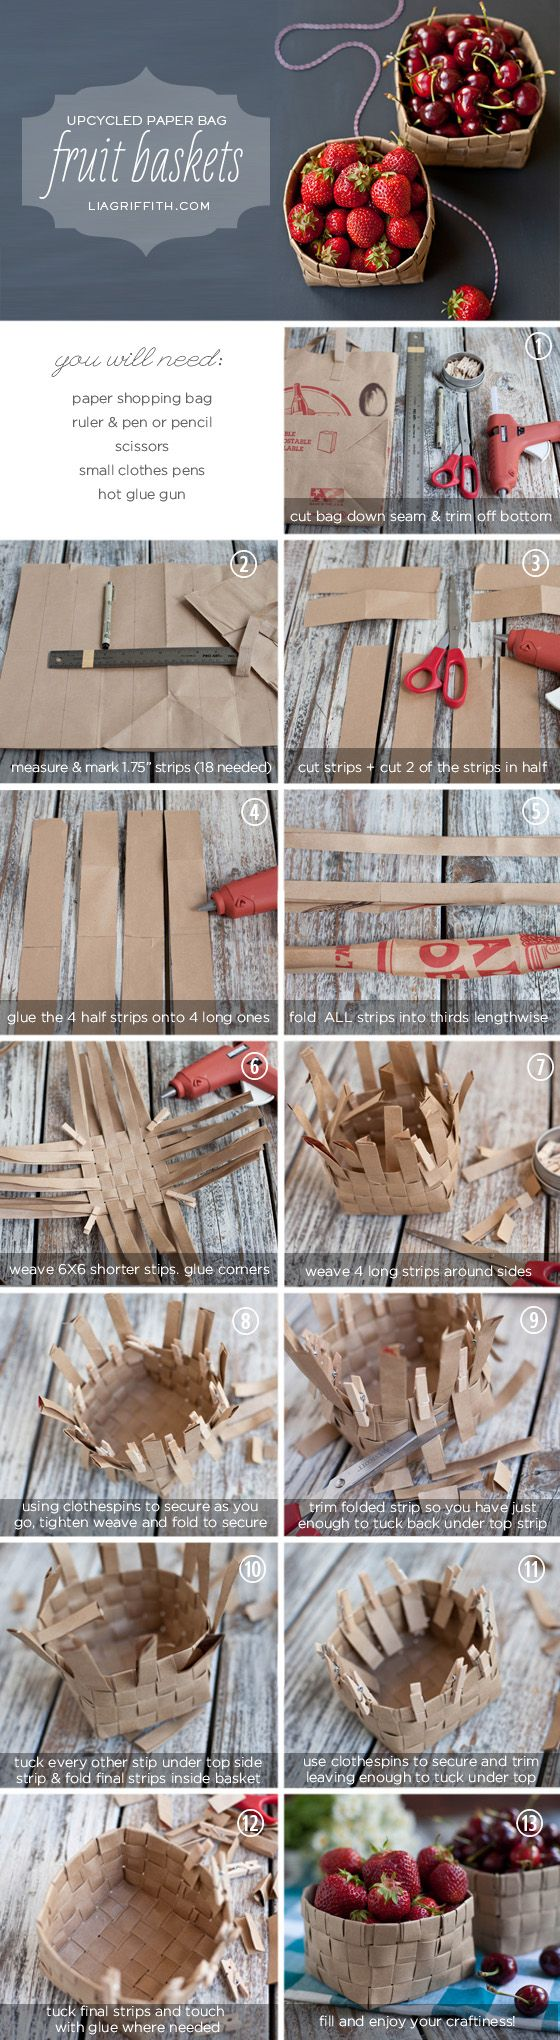 make paper bag fruit baskets